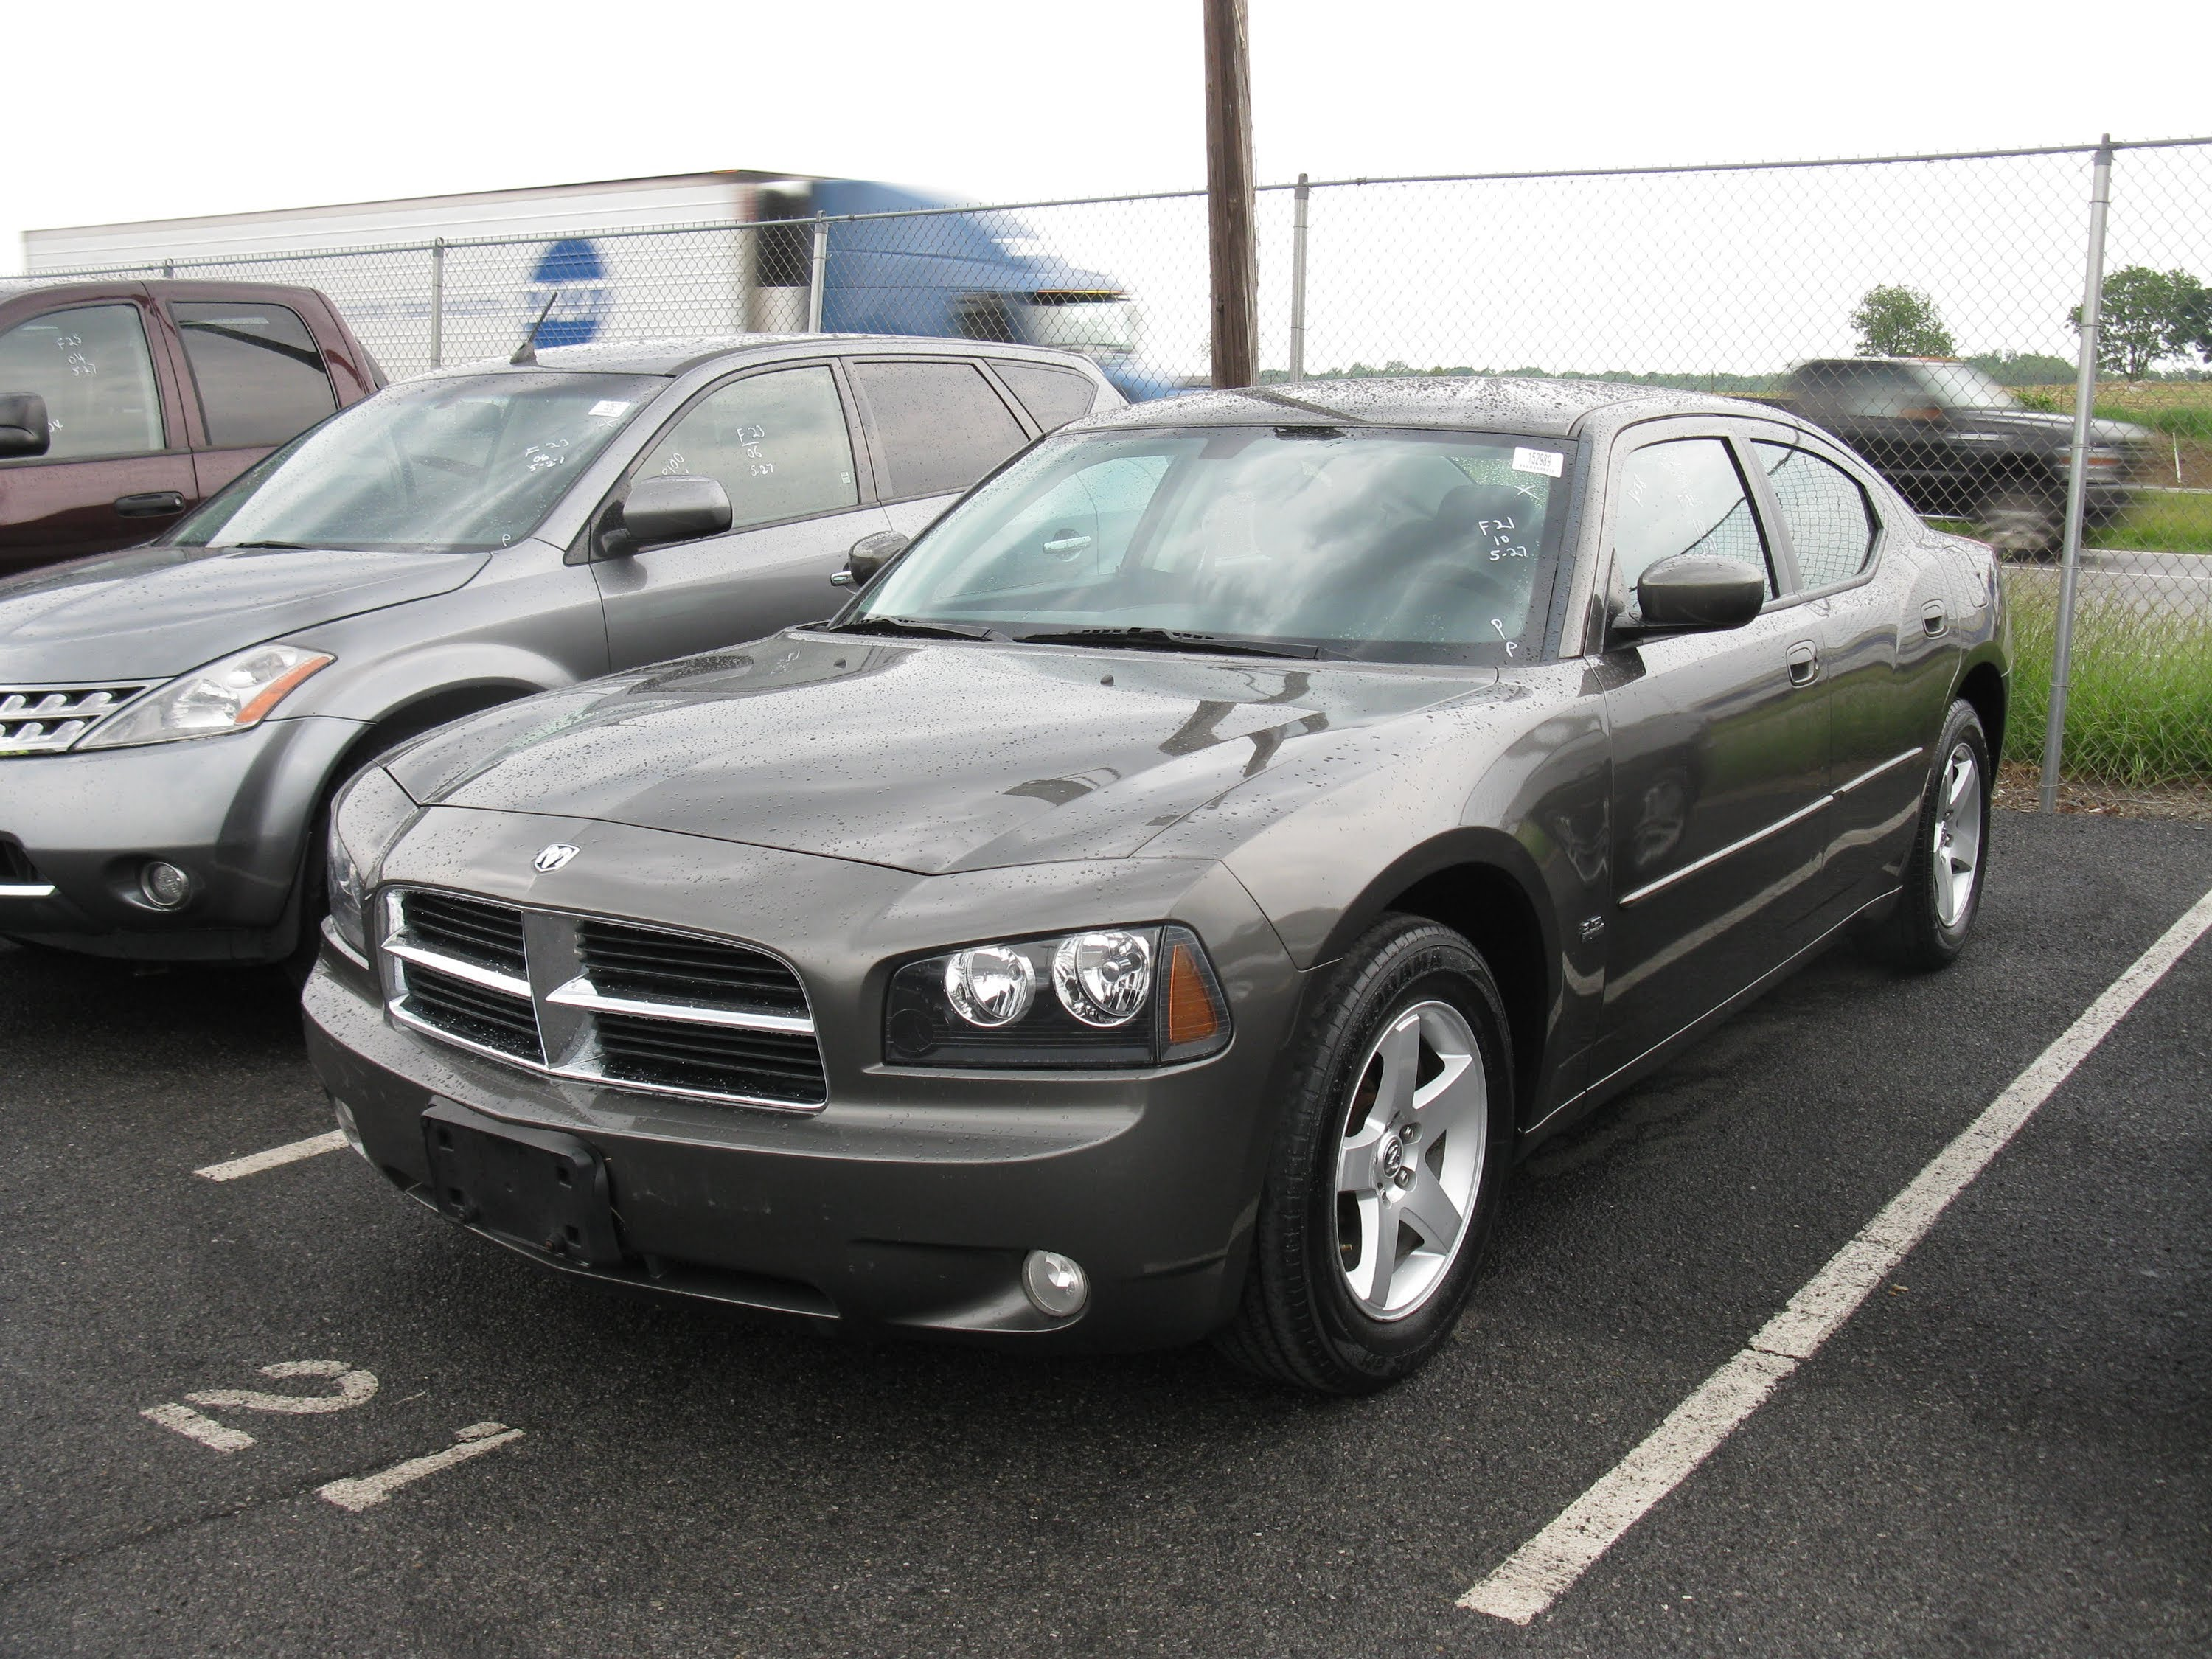 2010 Dodge Charger #16